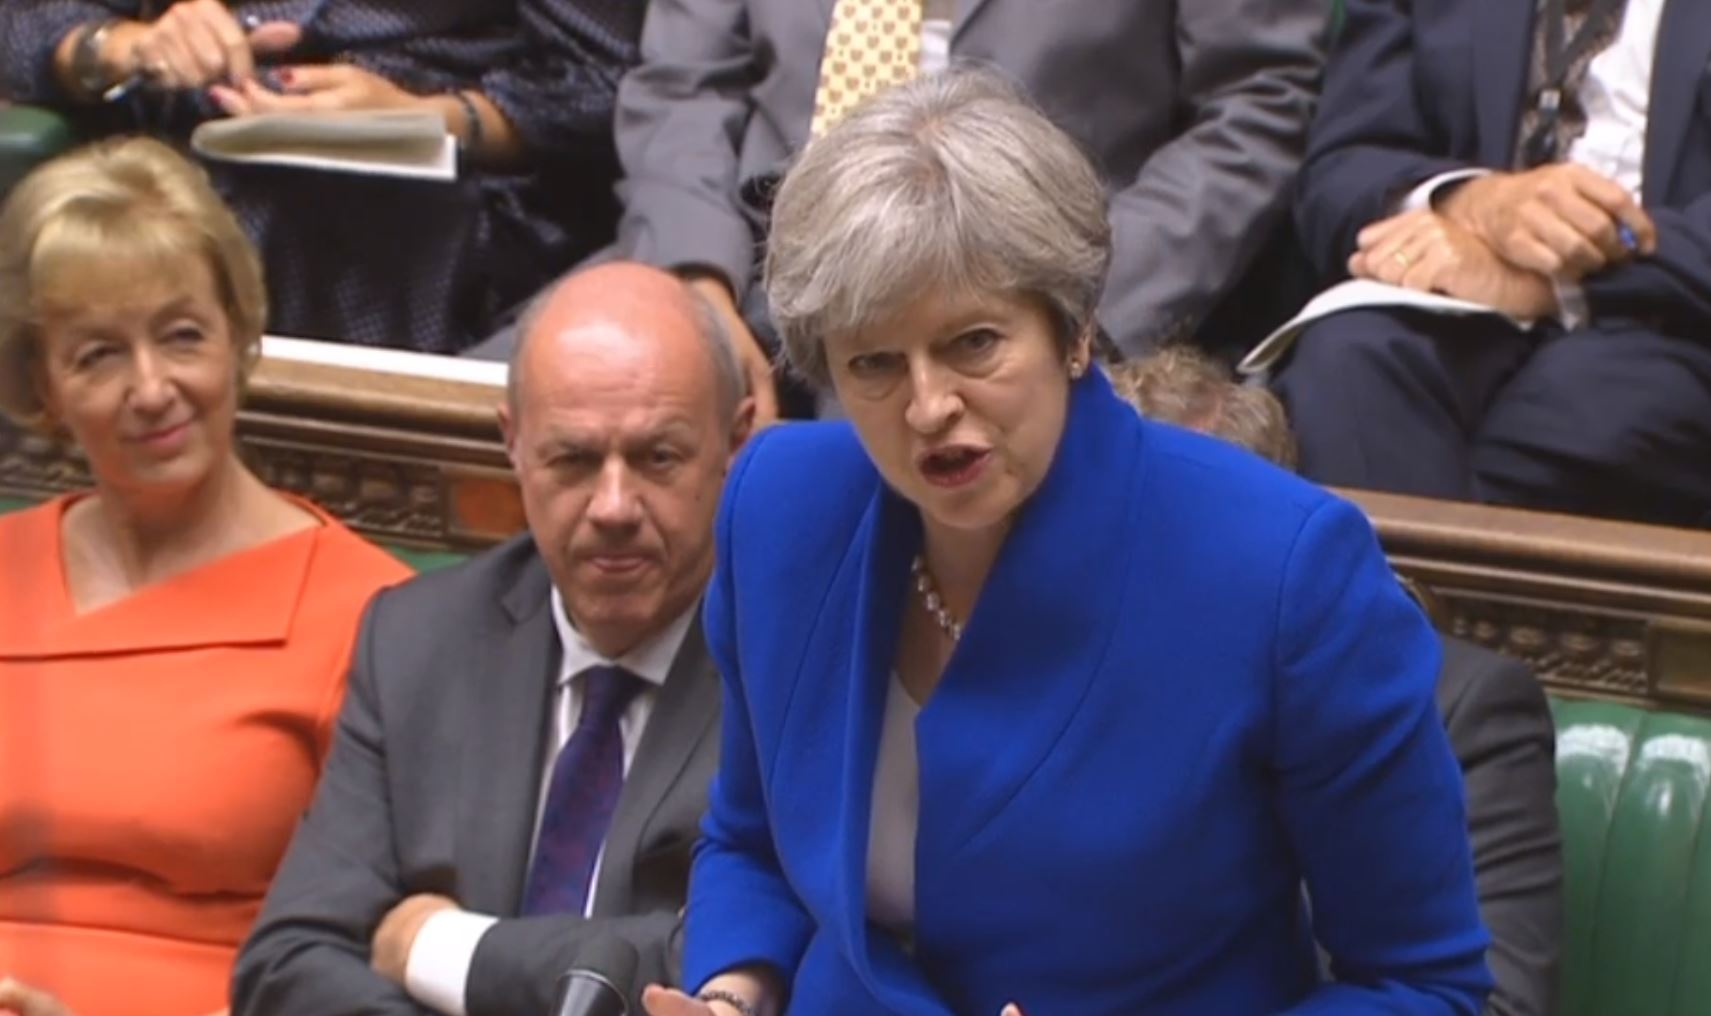 Theresa May taking Prime Minister's Questions